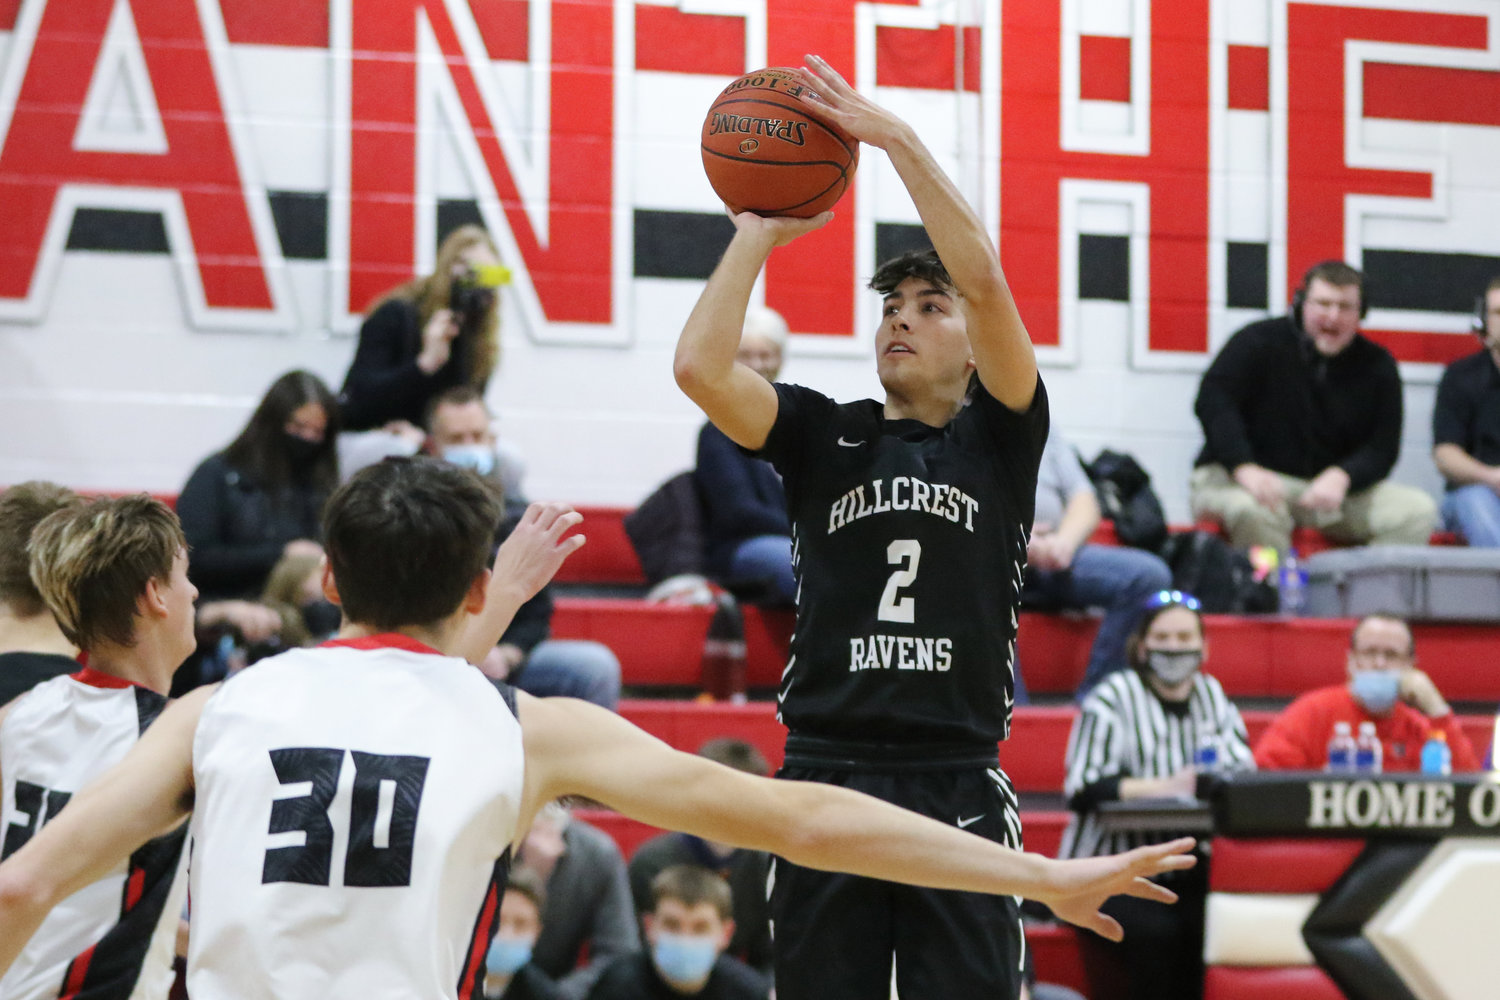 Best from behind the arc: Eli Ours at Louisa-Muscatine. Ours was 7-10 from the 3-point line as Hillcrest avenged an earlier loss with a 54-24 win at L-M.